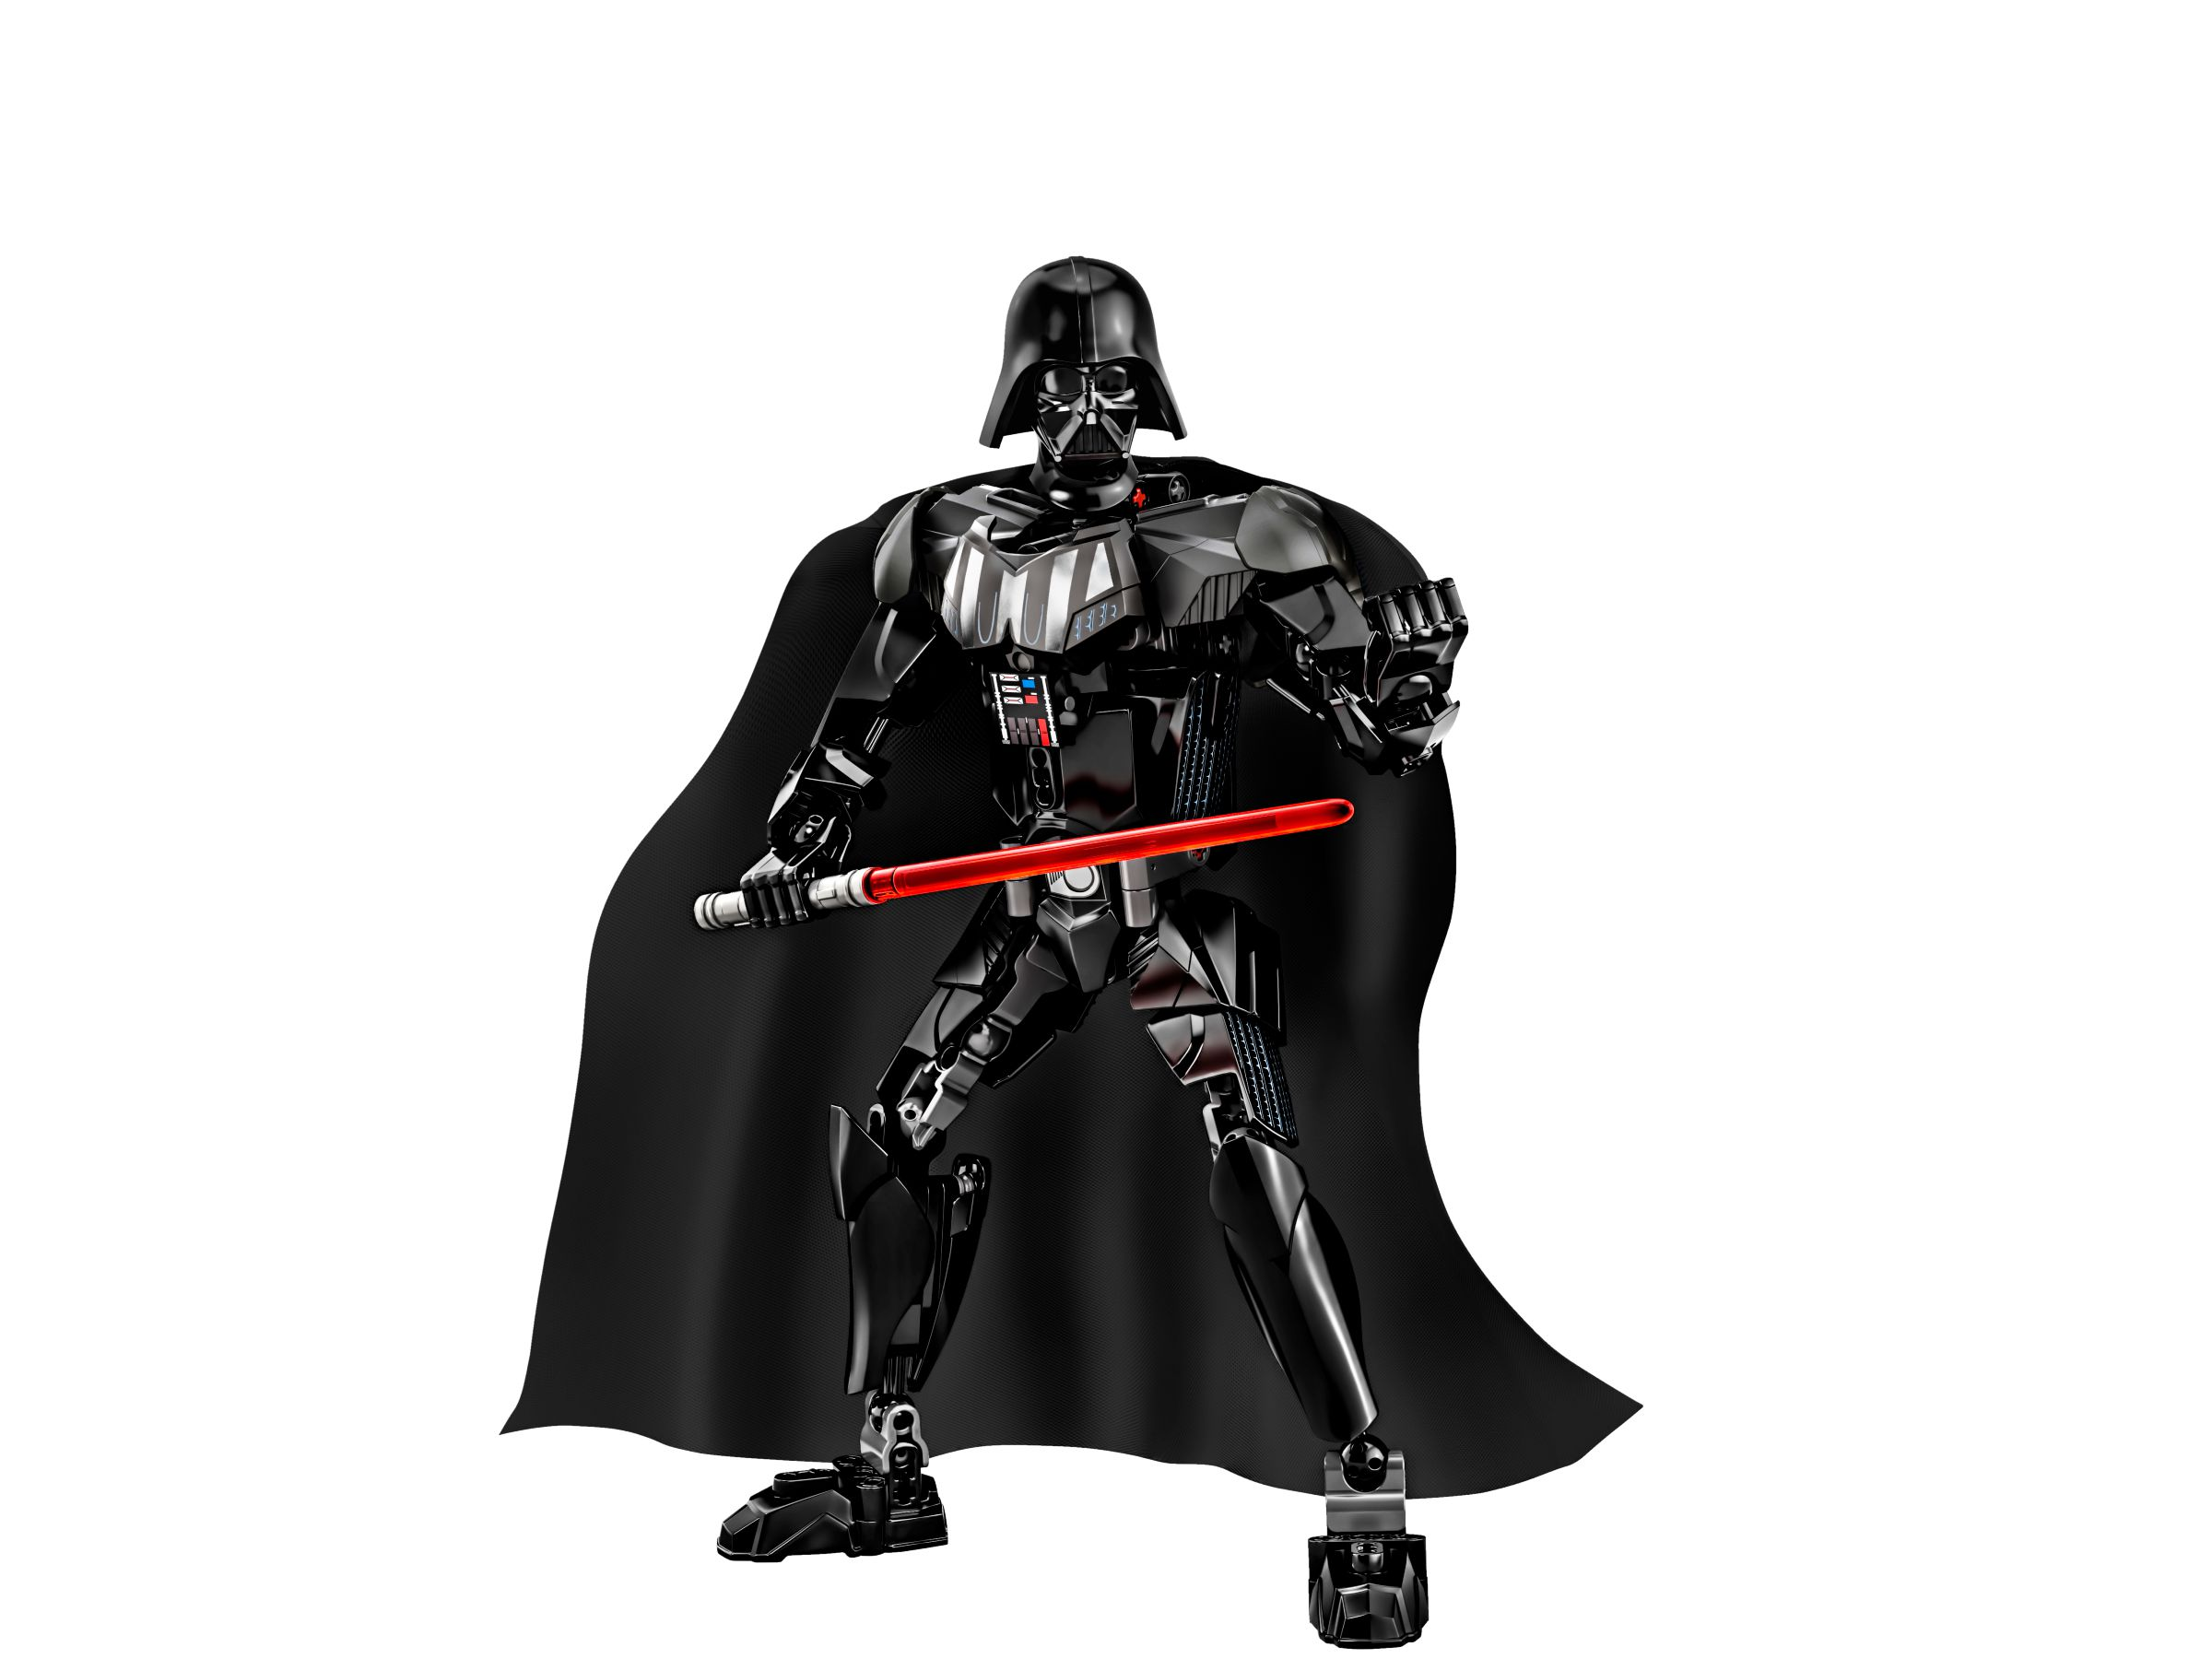 LEGO Star Wars Buildable Figures 75111 Darth Vader™ LEGO_75111.jpg